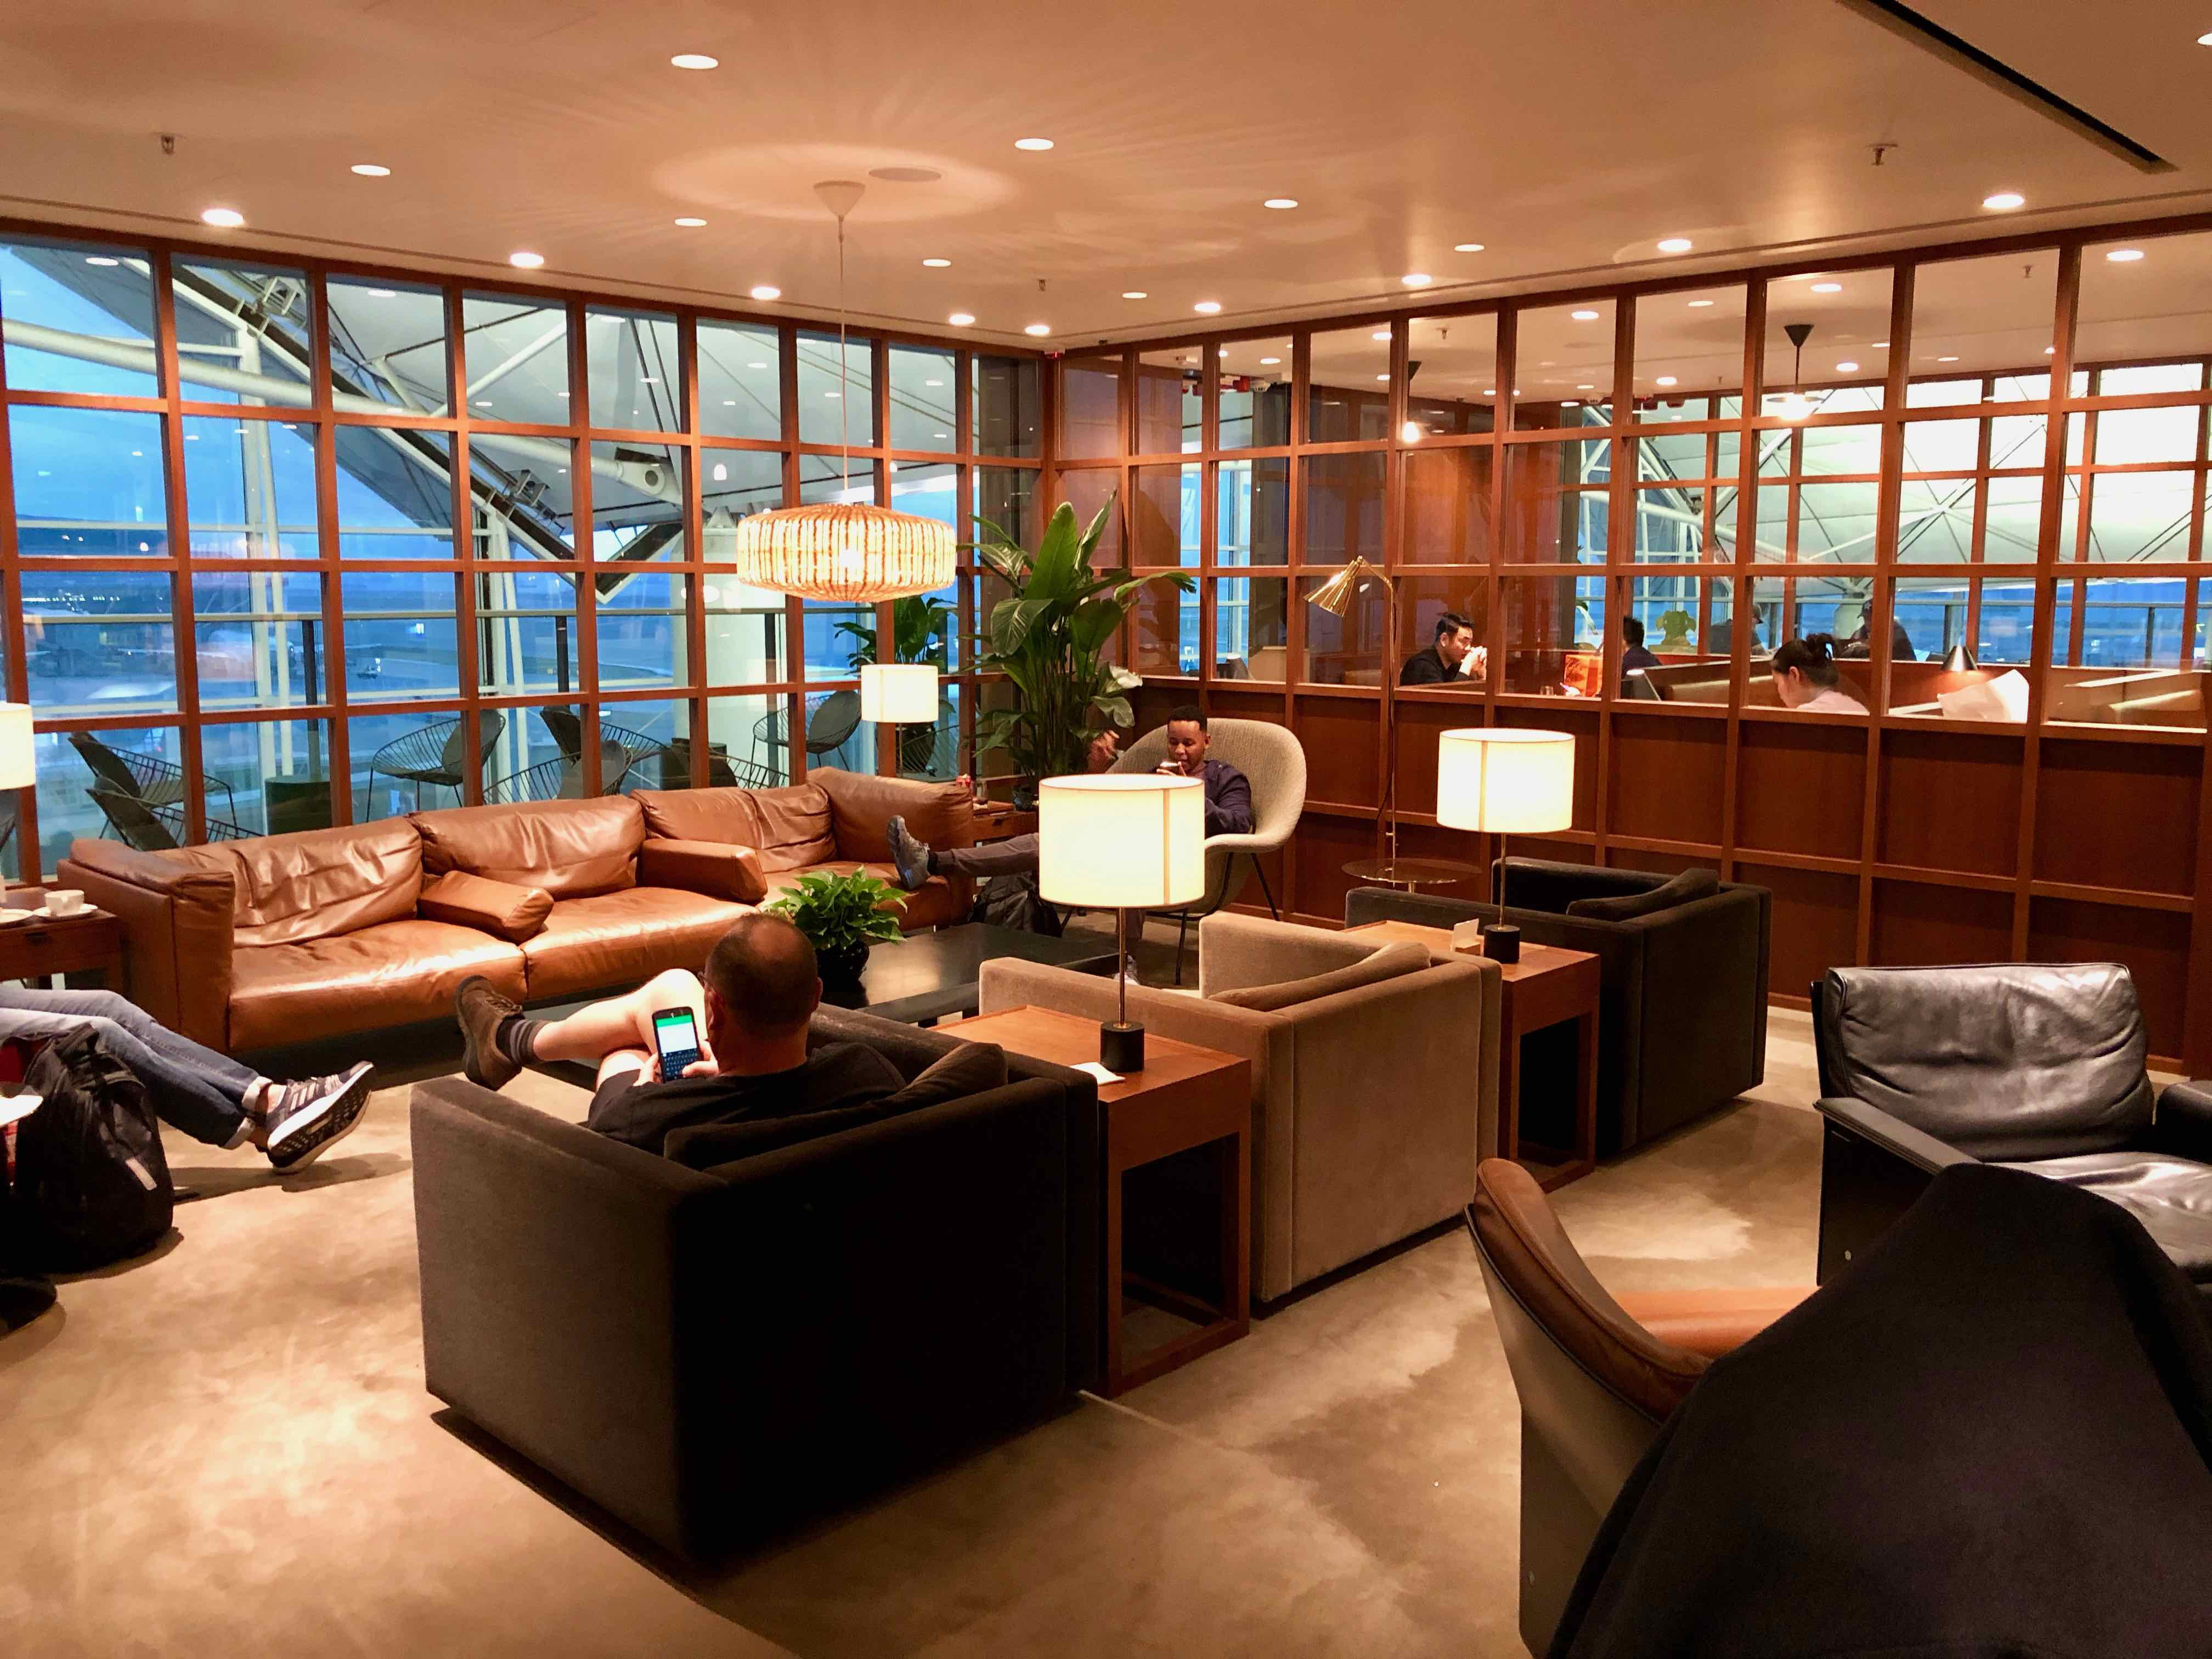 Cathay Pacific The Deck Business Class Lounge Hong Kong main lounging area